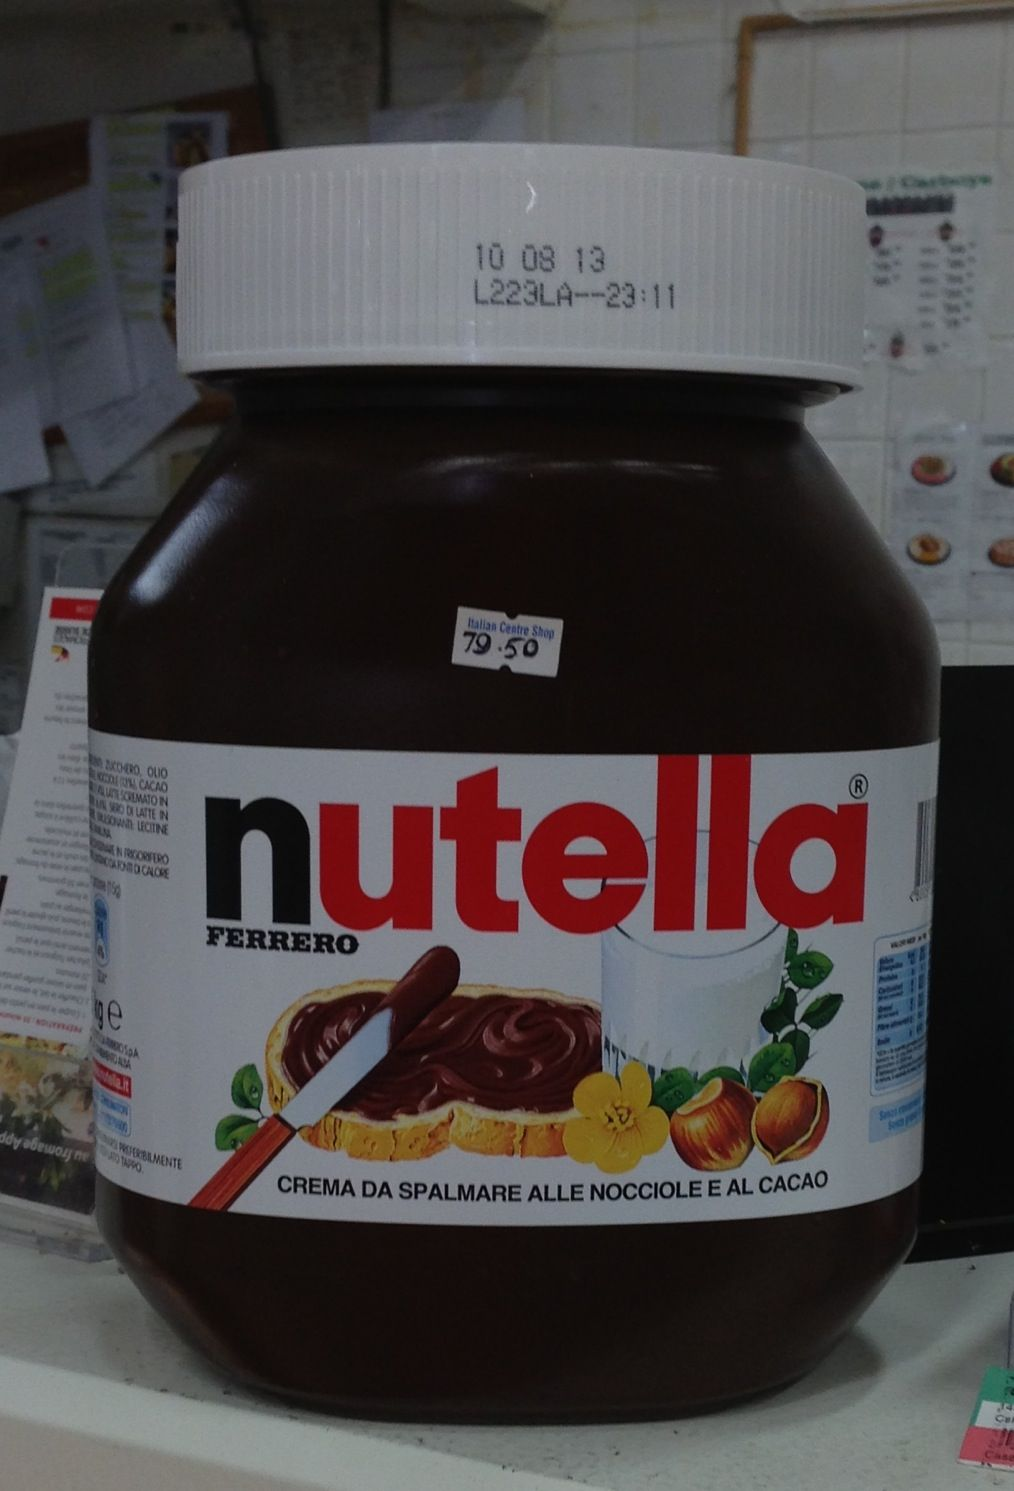 Biggest bottle of nutella at the italian centre in